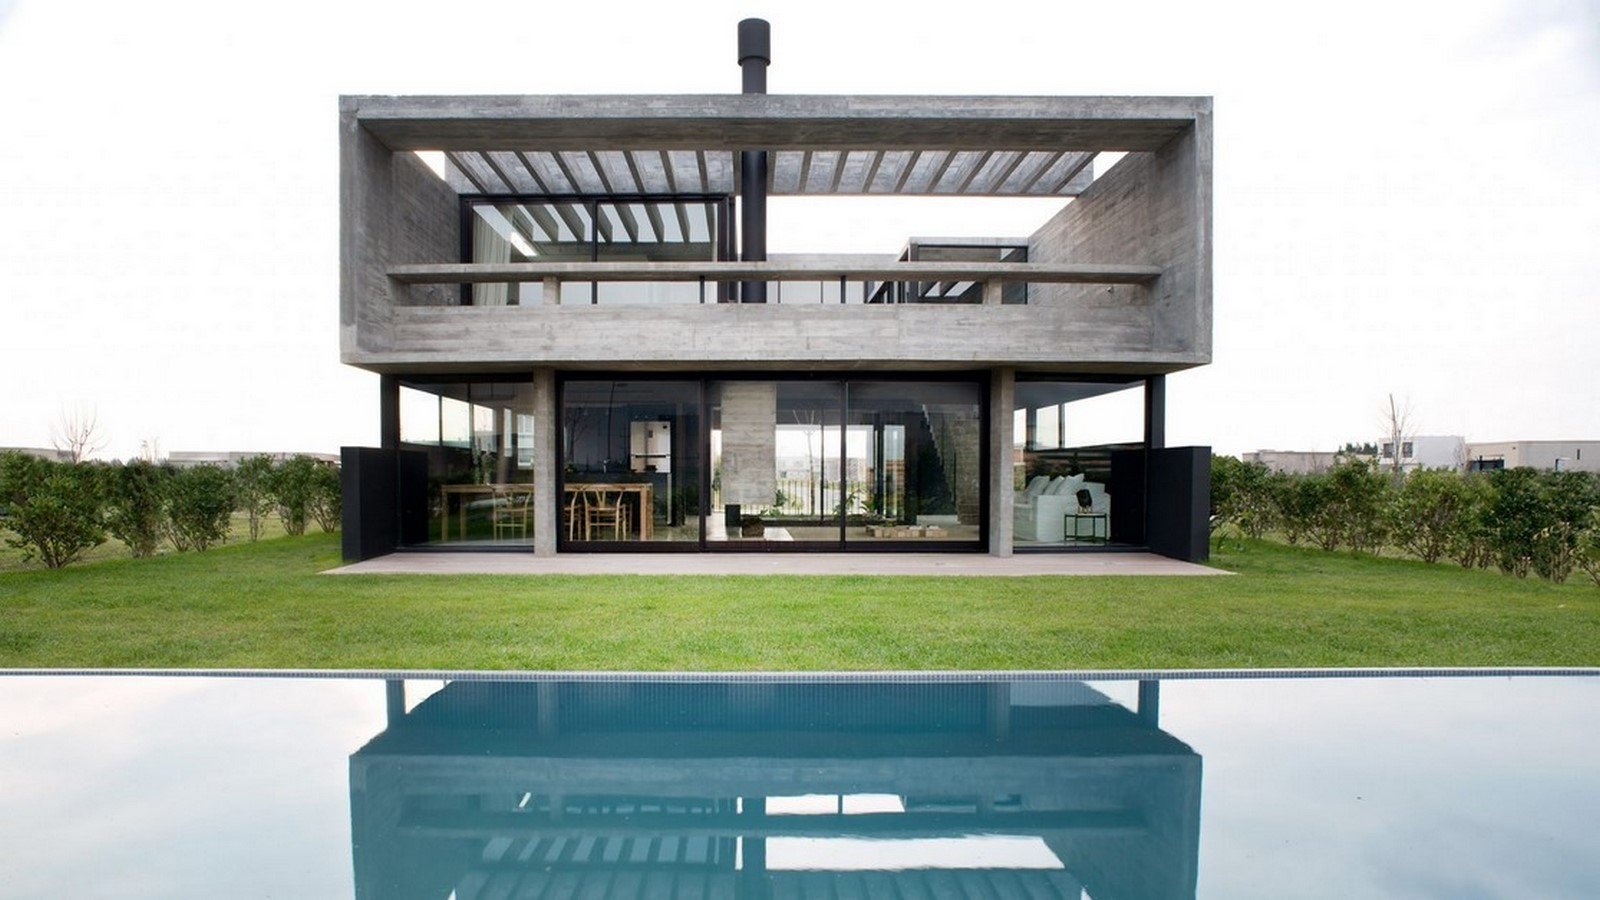 50 Examples of Modern concrete homes - Sheet2